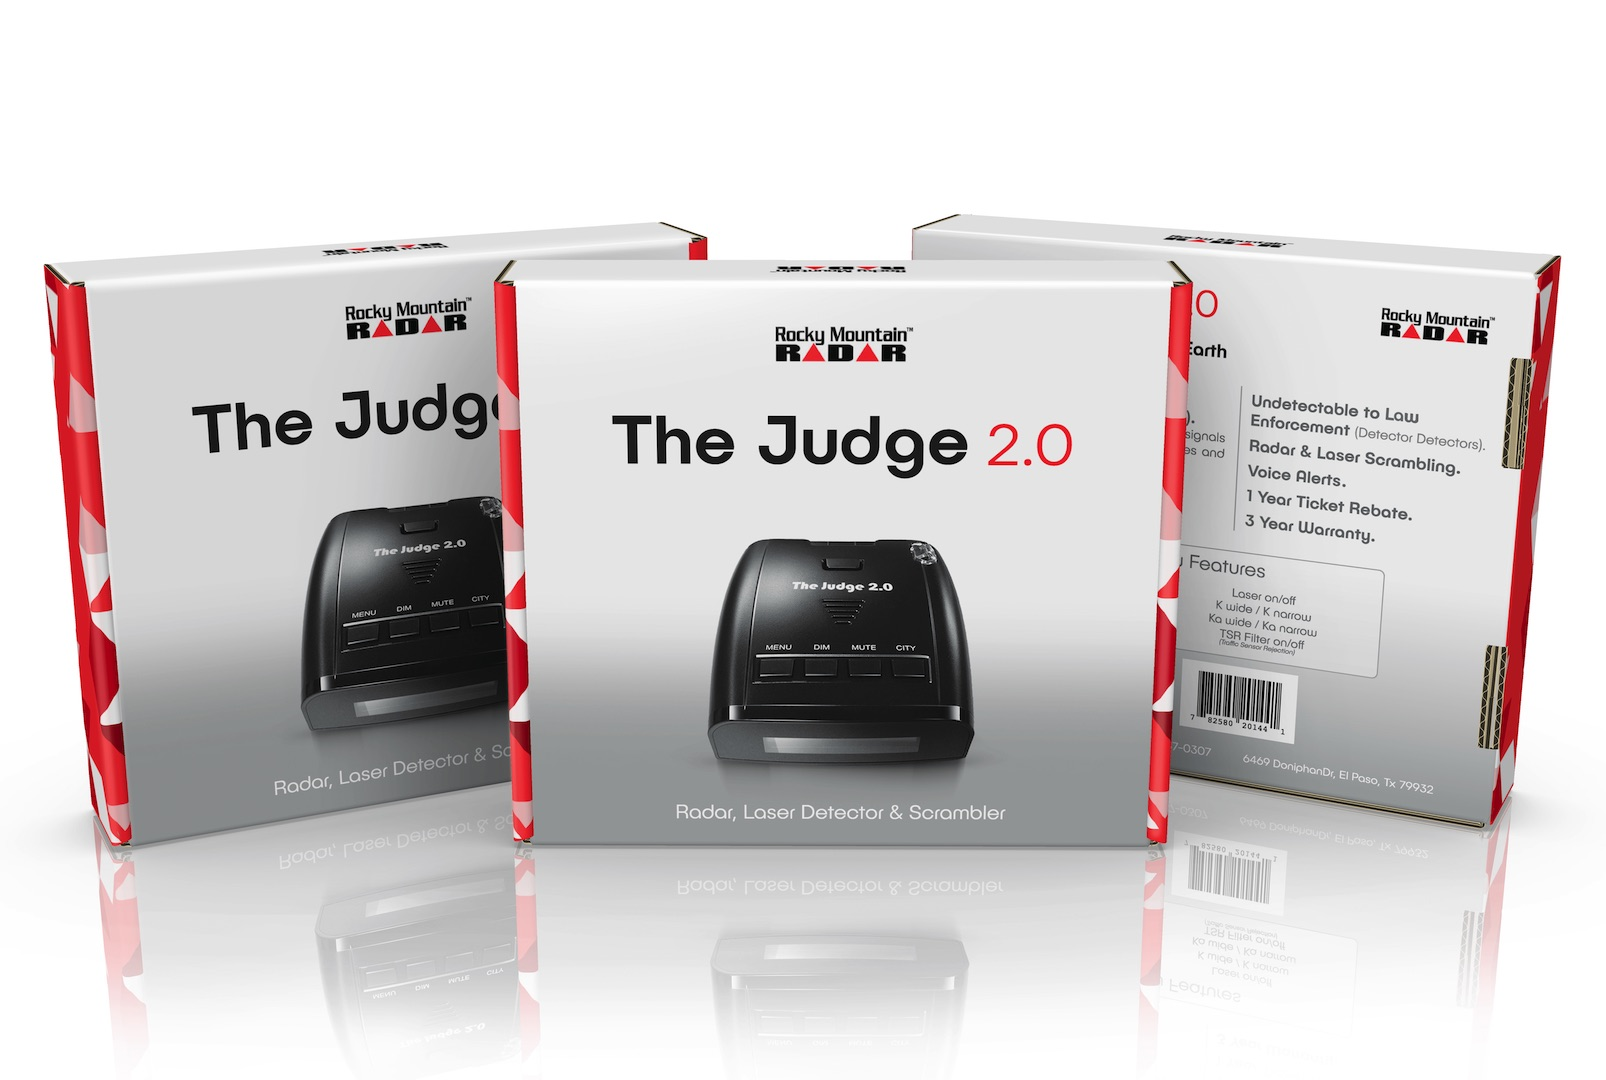 The Judge 2 0 Laser/Radar Detector & Scrambler